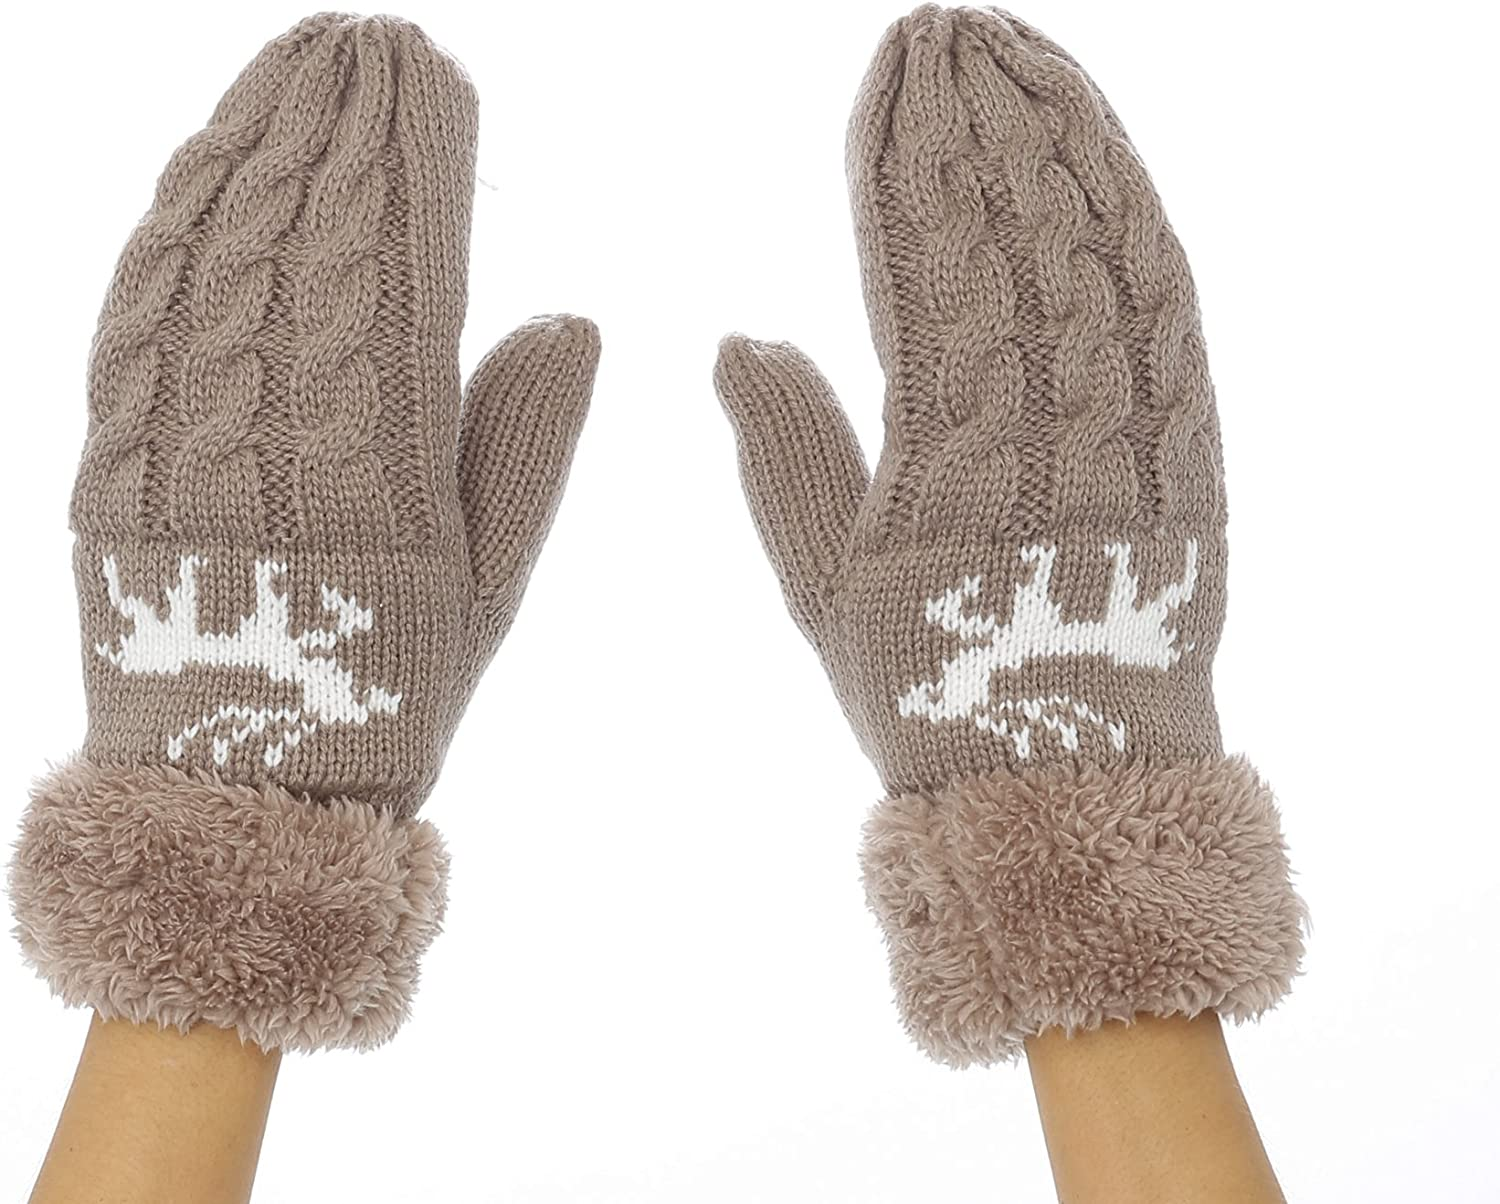 Warm Winter Thick Ultra-Cheap Deals Plush Mitten Gloves Re Max 58% OFF Lining Snowflake Or Fur